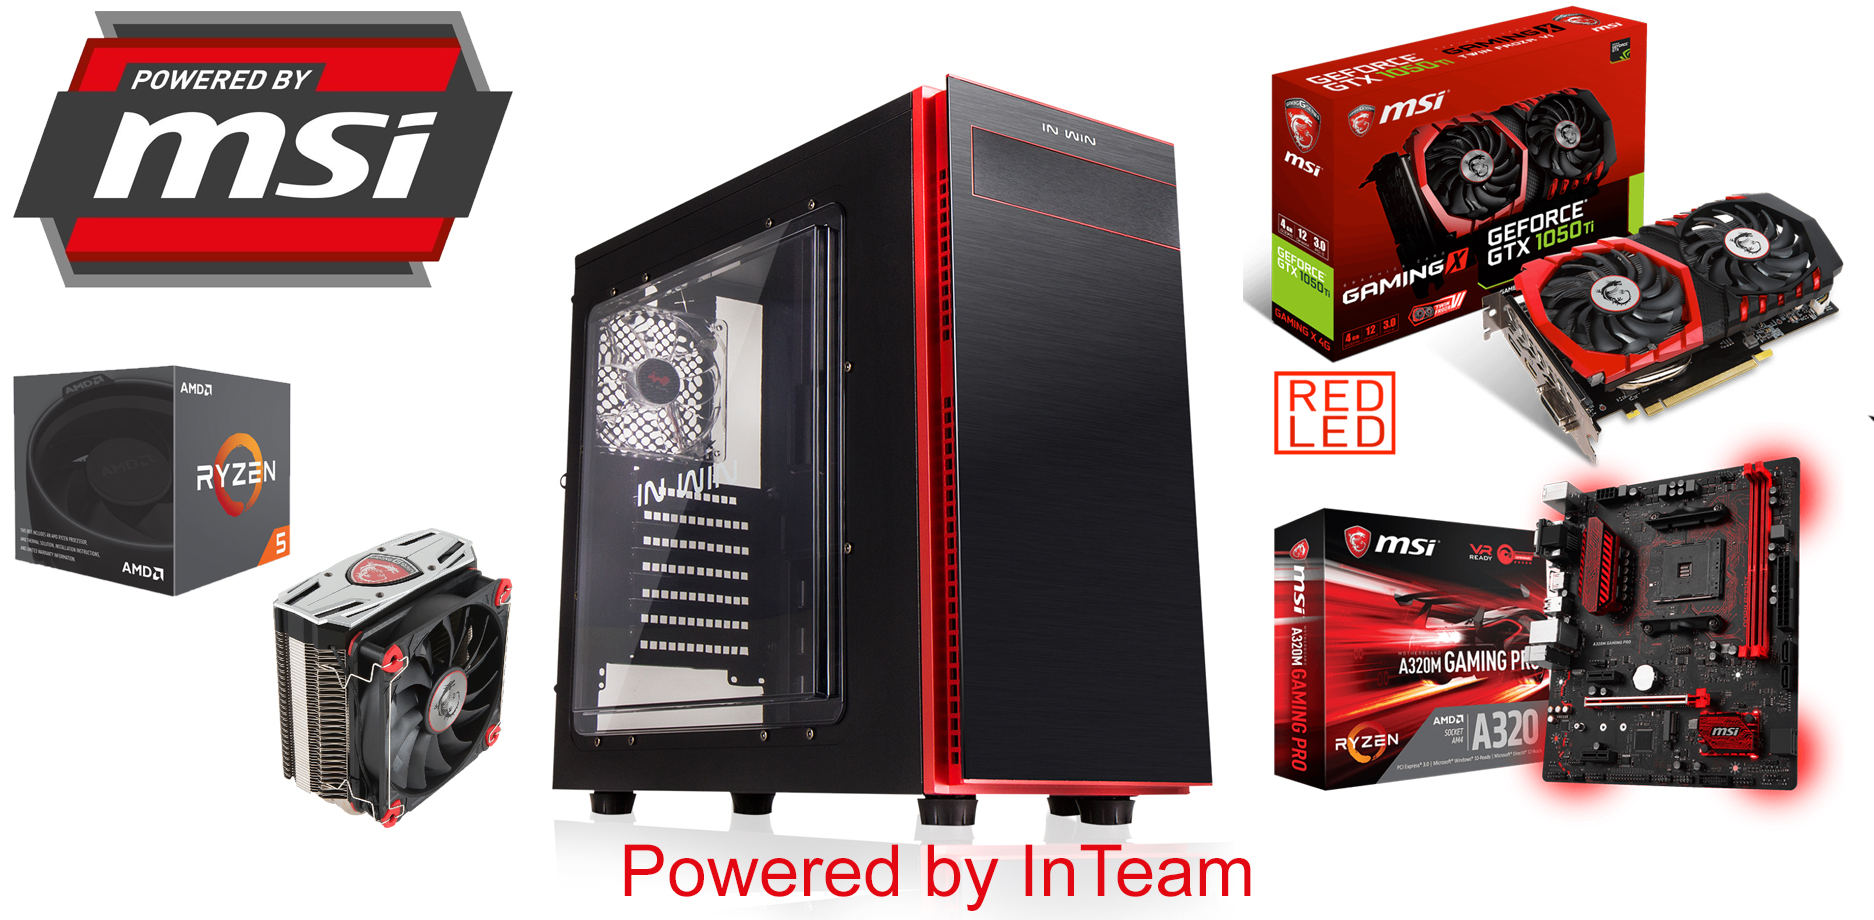 MSI GAMING PC (1102)